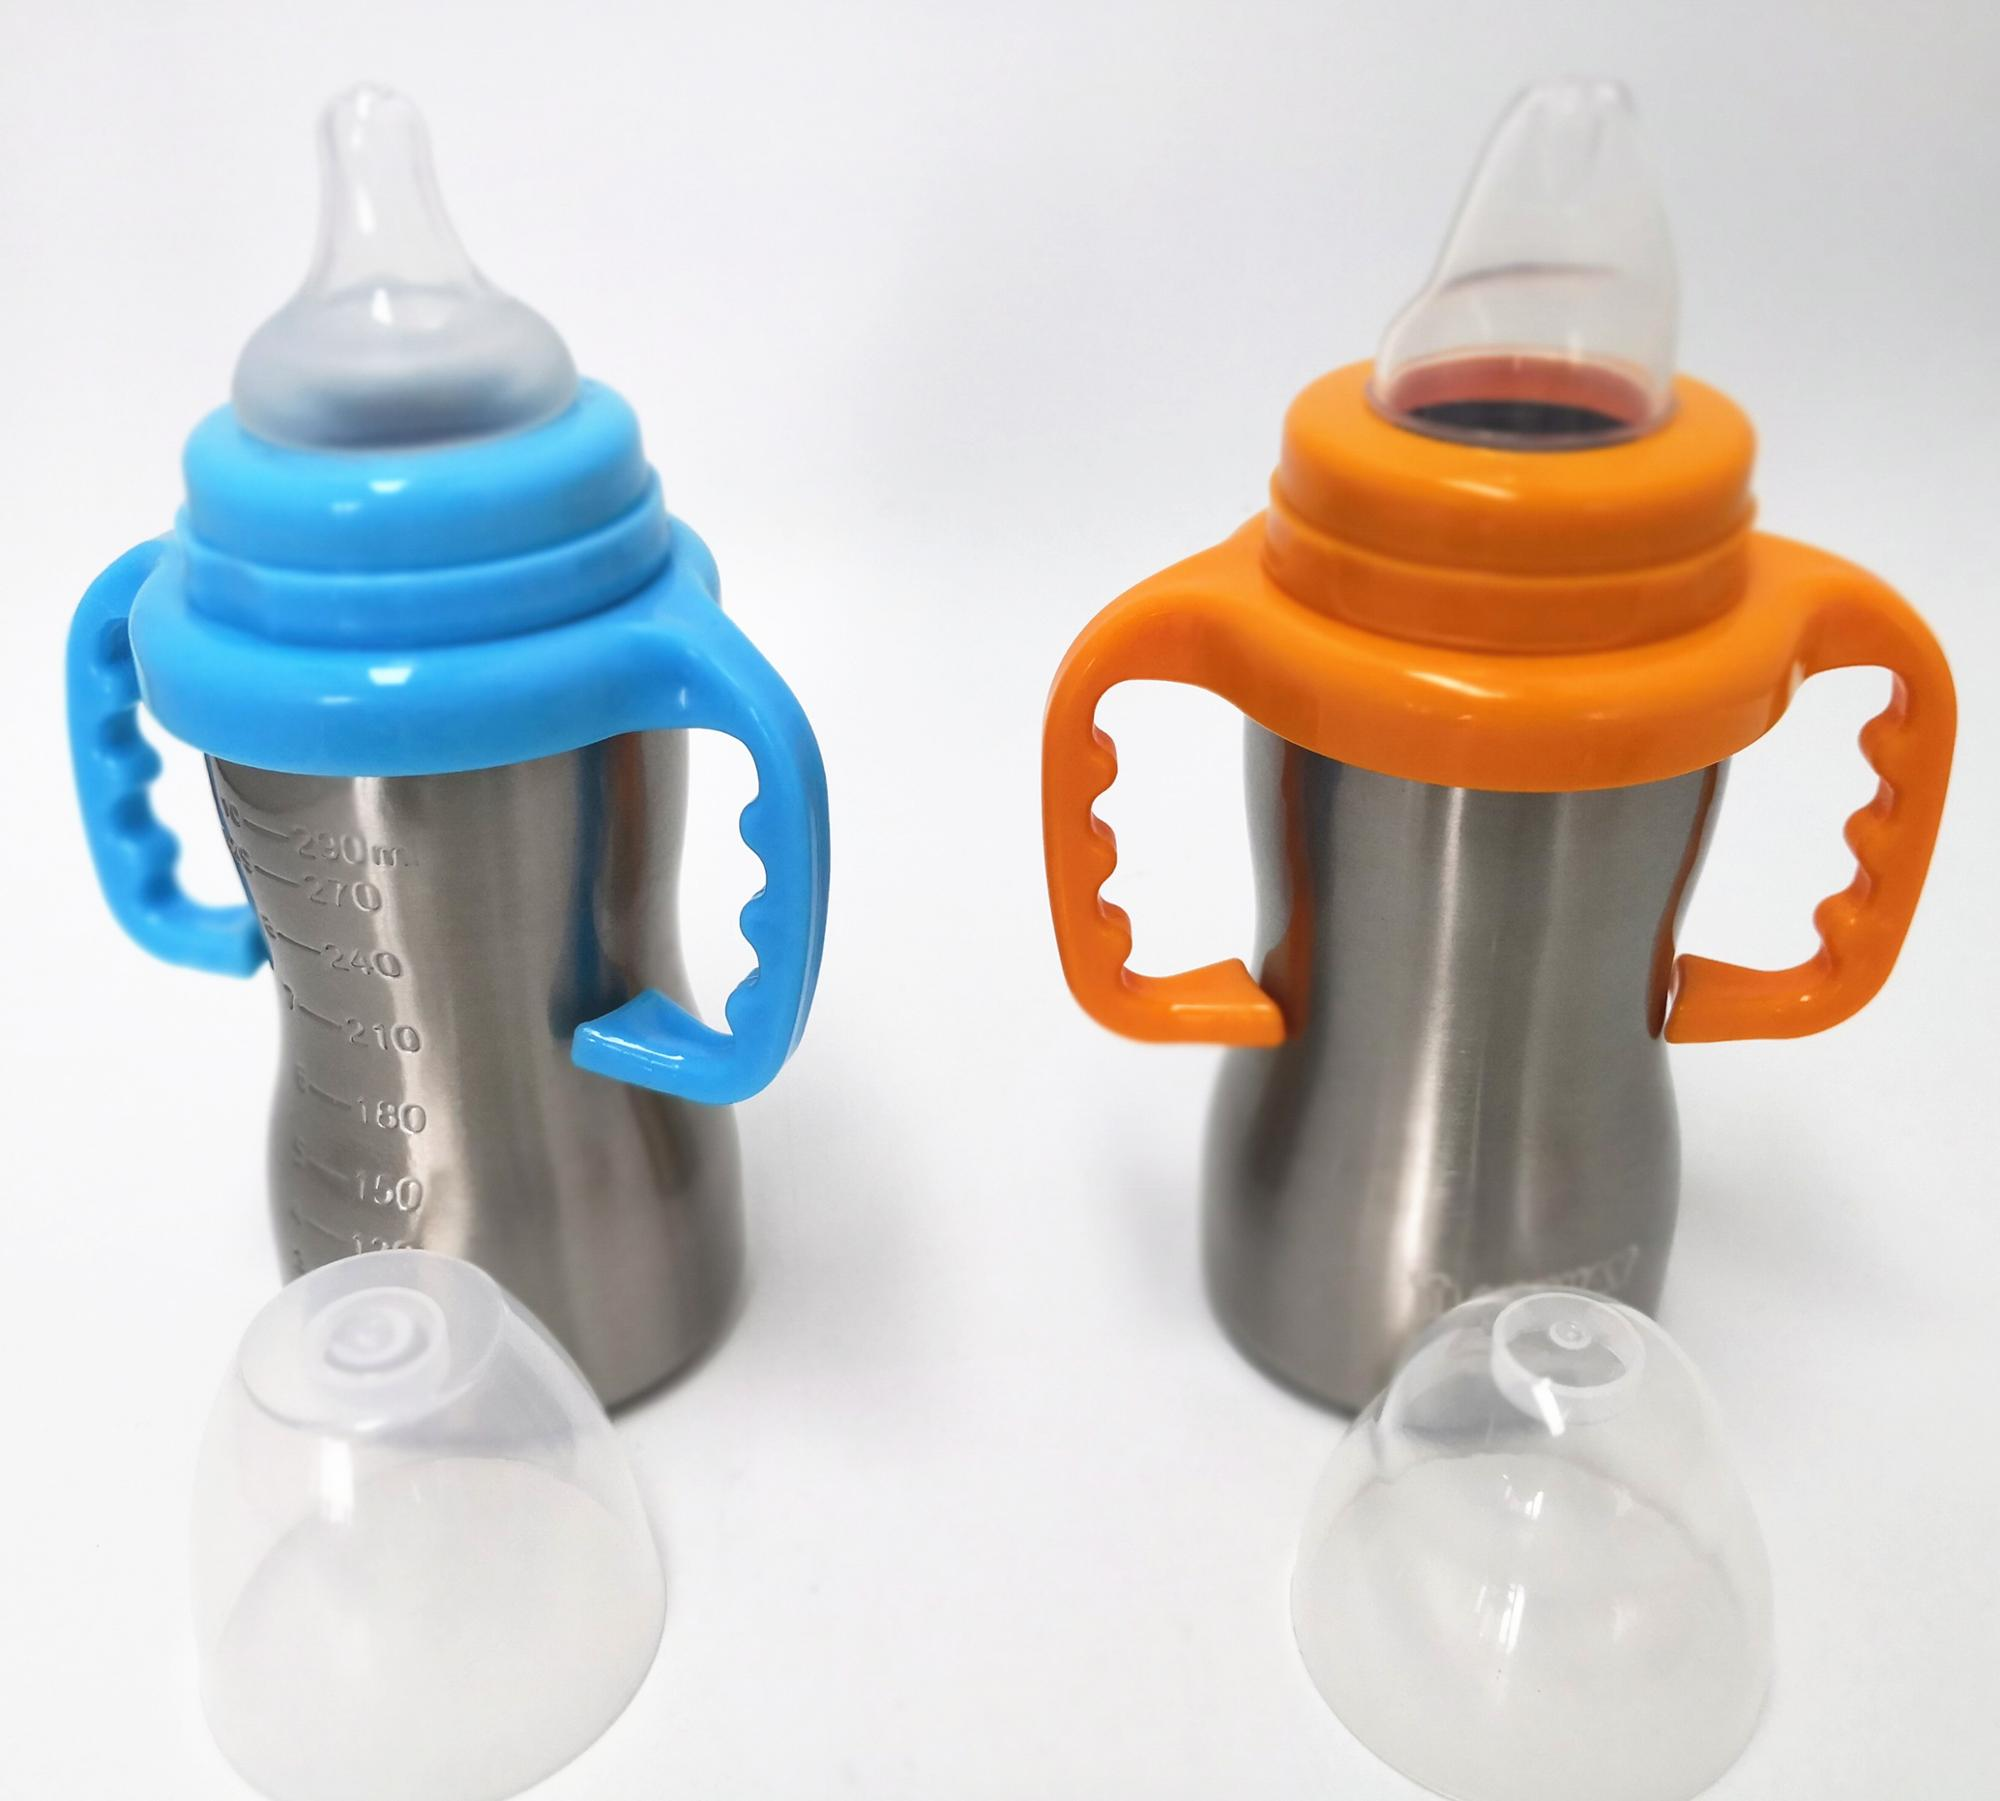 FDA stainless steel baby feeding bottle with silicone pacifier